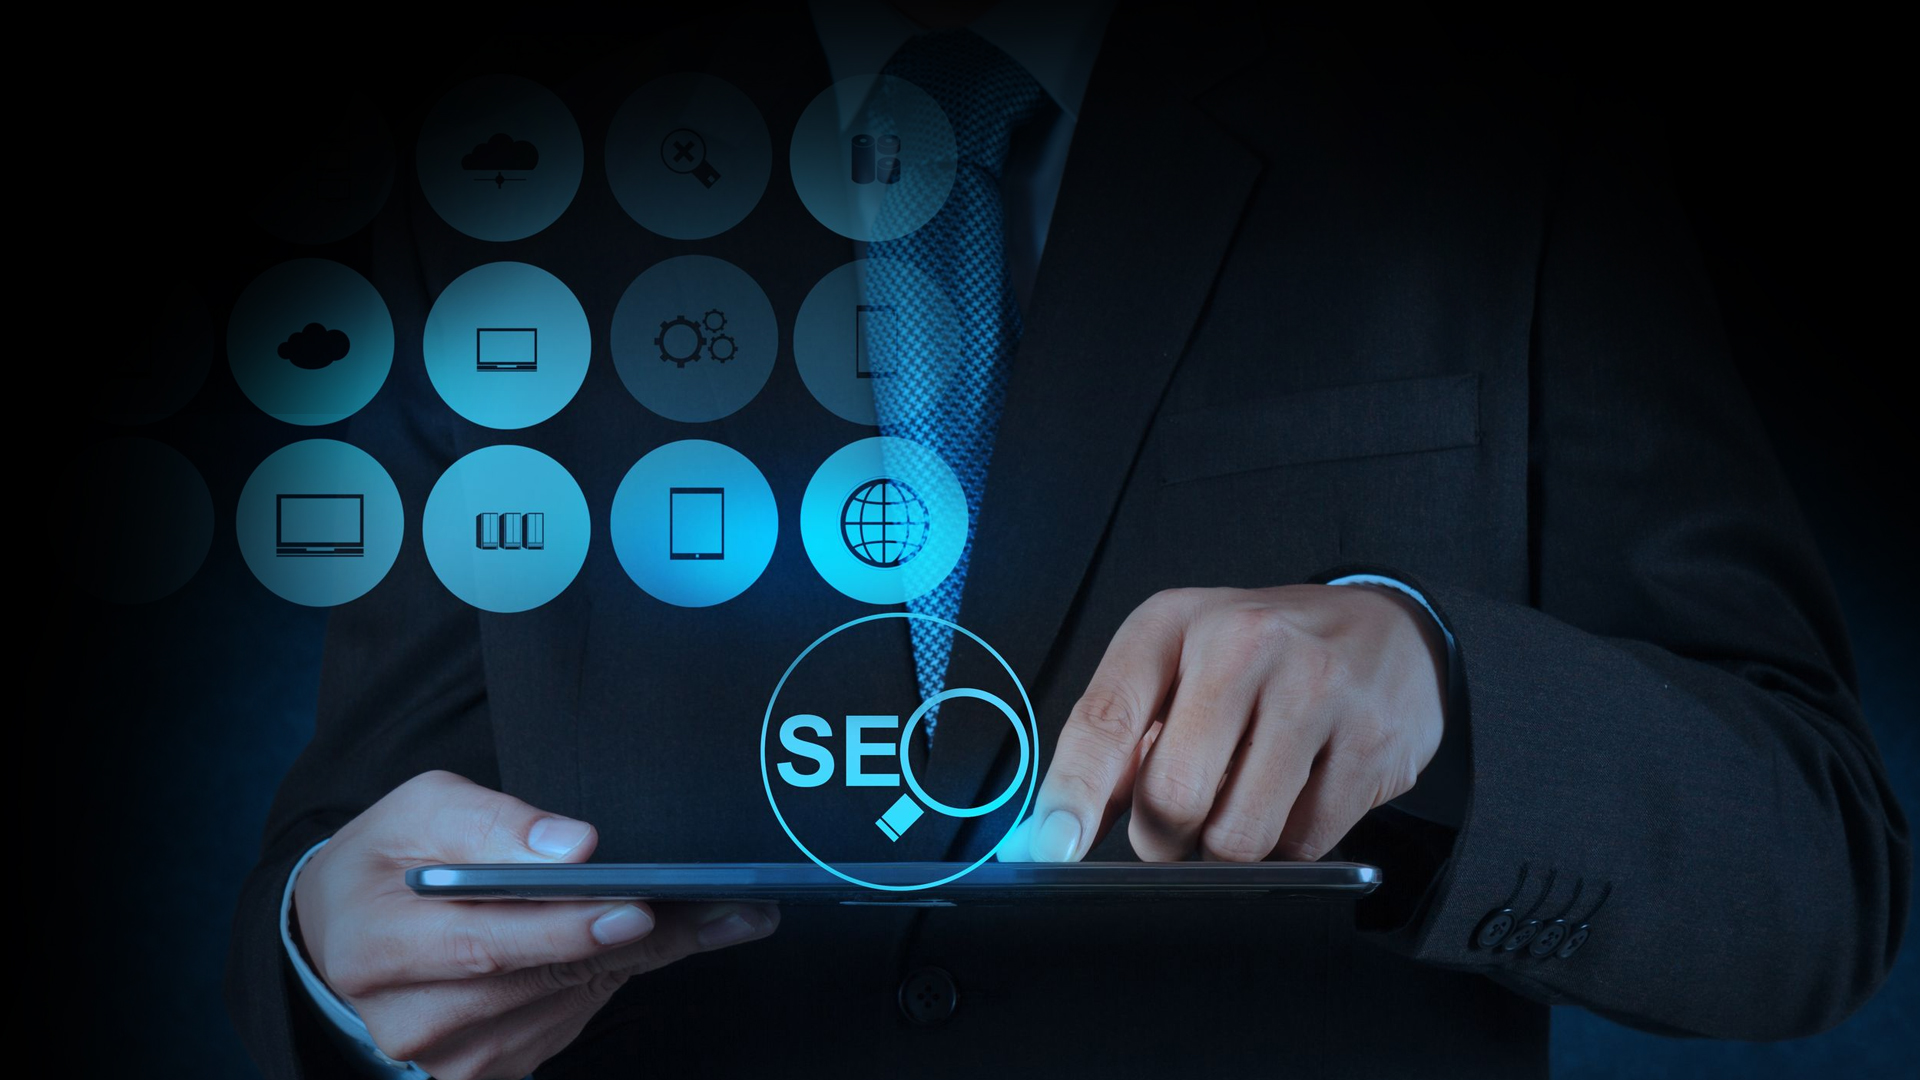 4 Incredible Image SEO Basics for Optimizing Images for Search Engine